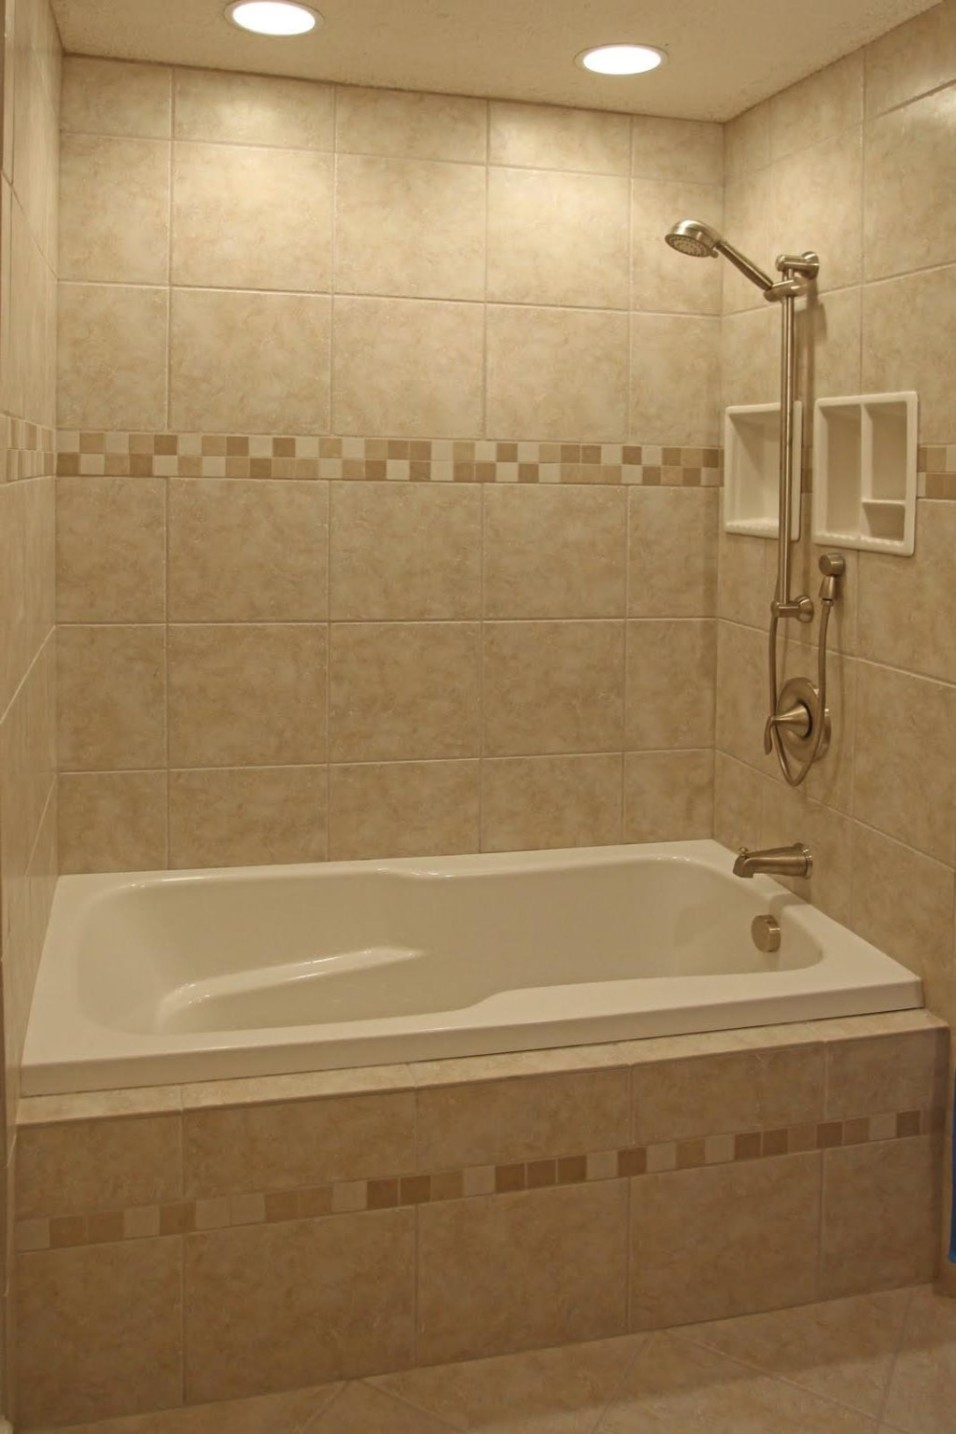 craftsman style bathroom tile - Designing Bathroom